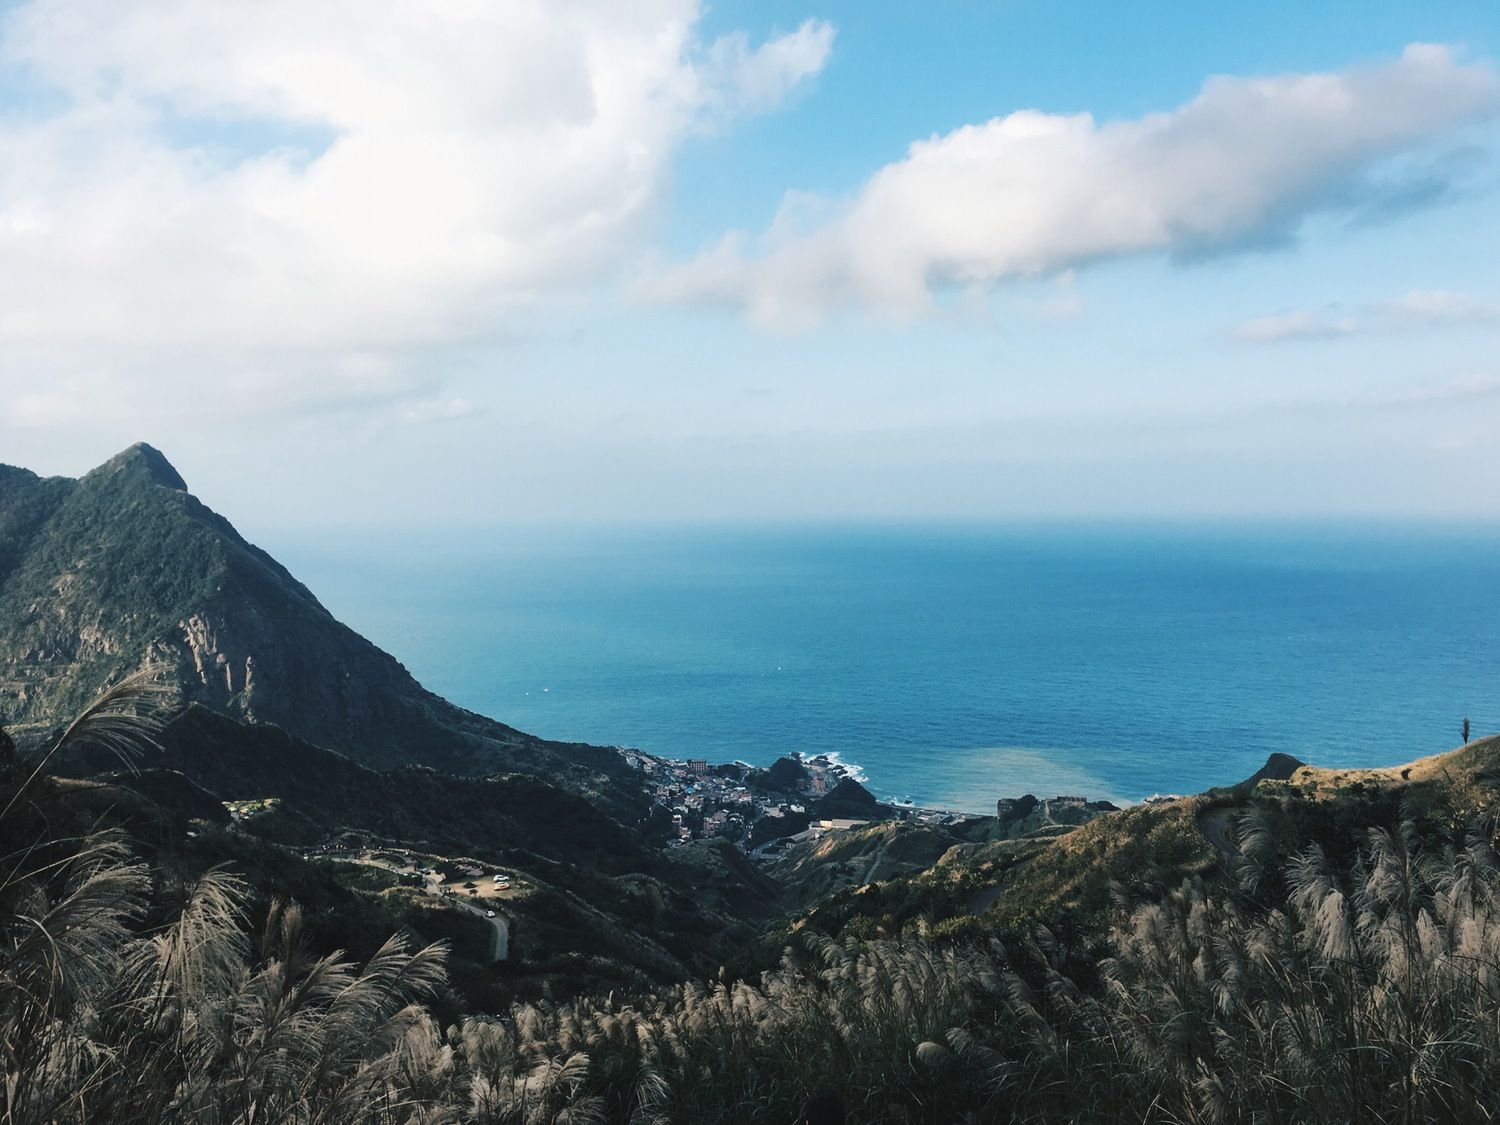 Check out these 6 great hikes near Taipei  http://townske.com/guide/10400/incredible-hiking-trail-in-northern-taiwan